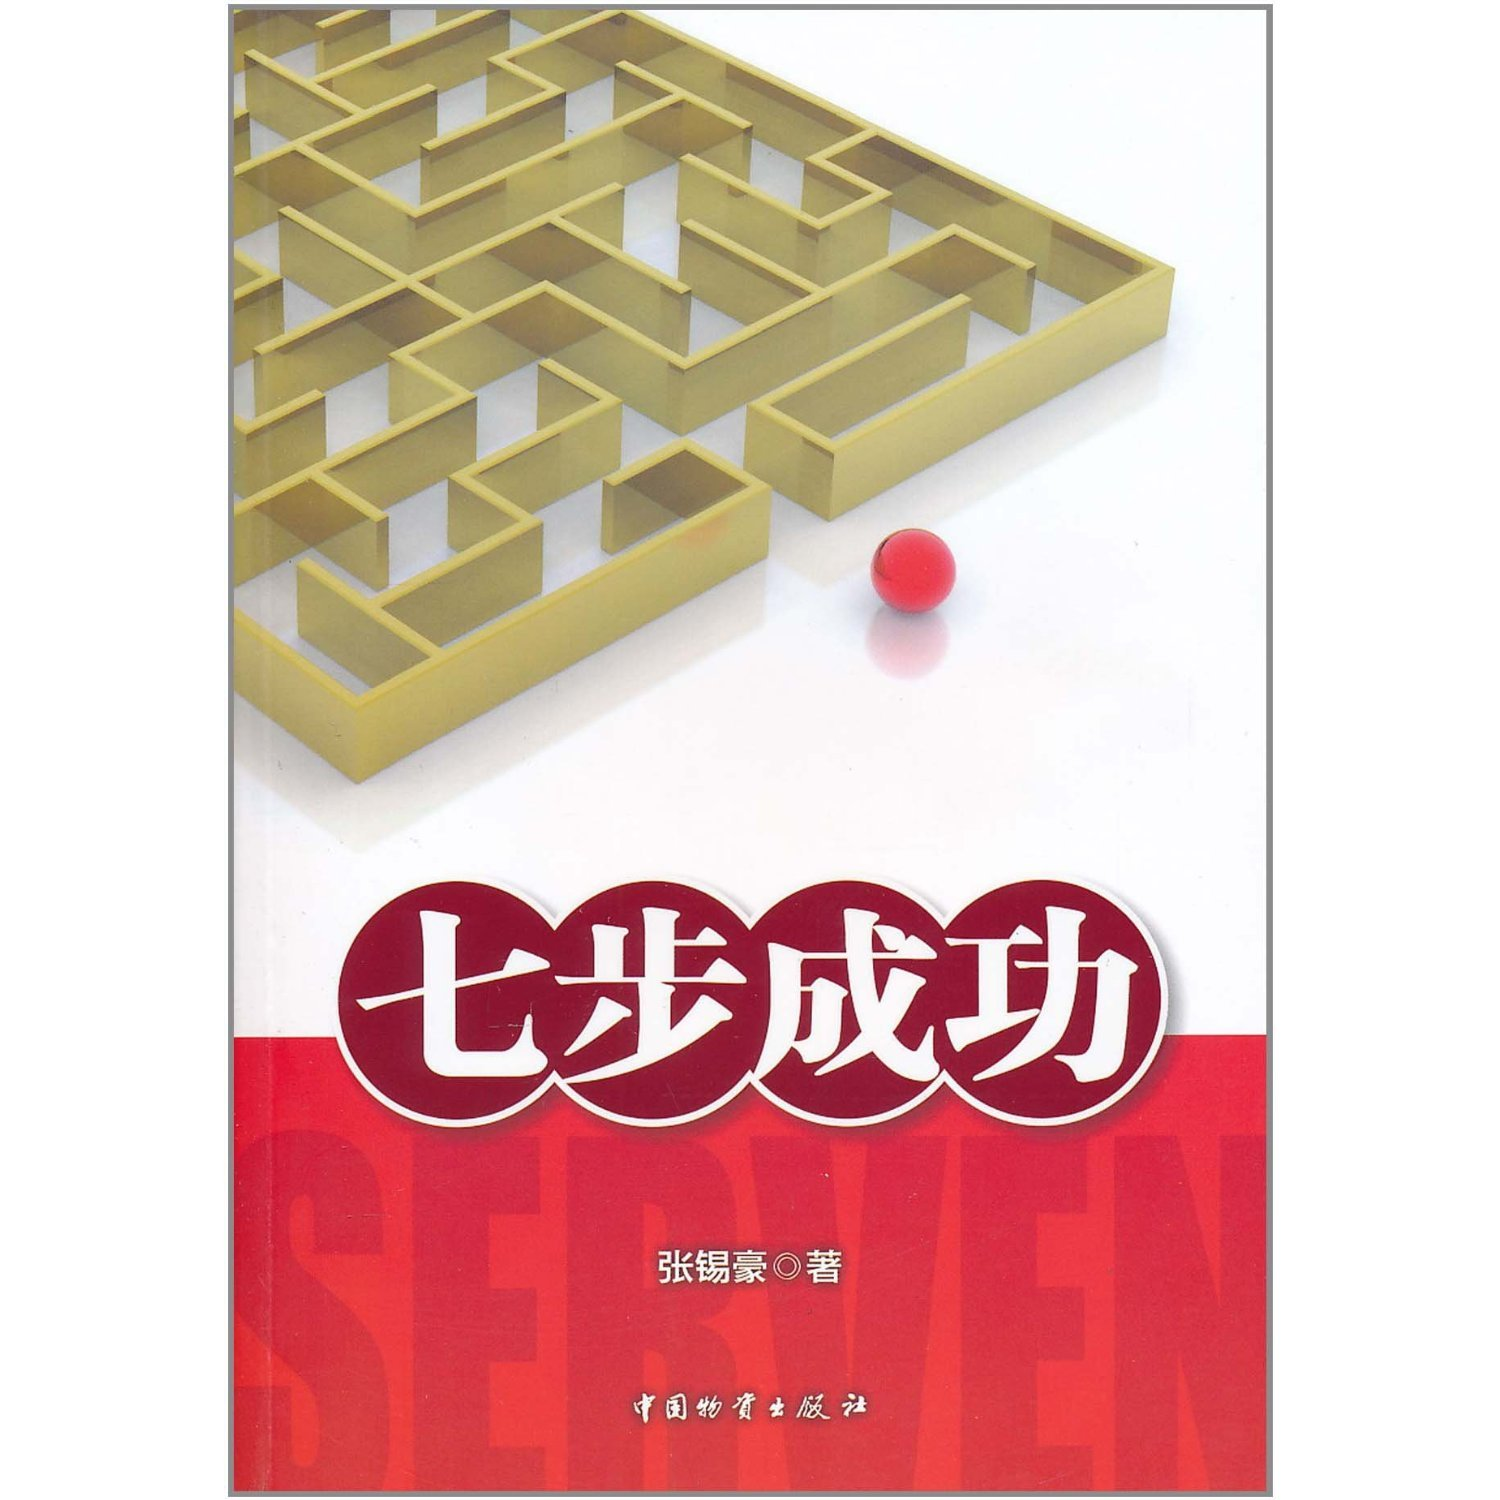 Seven steps to success (Chinese Edition) PDF